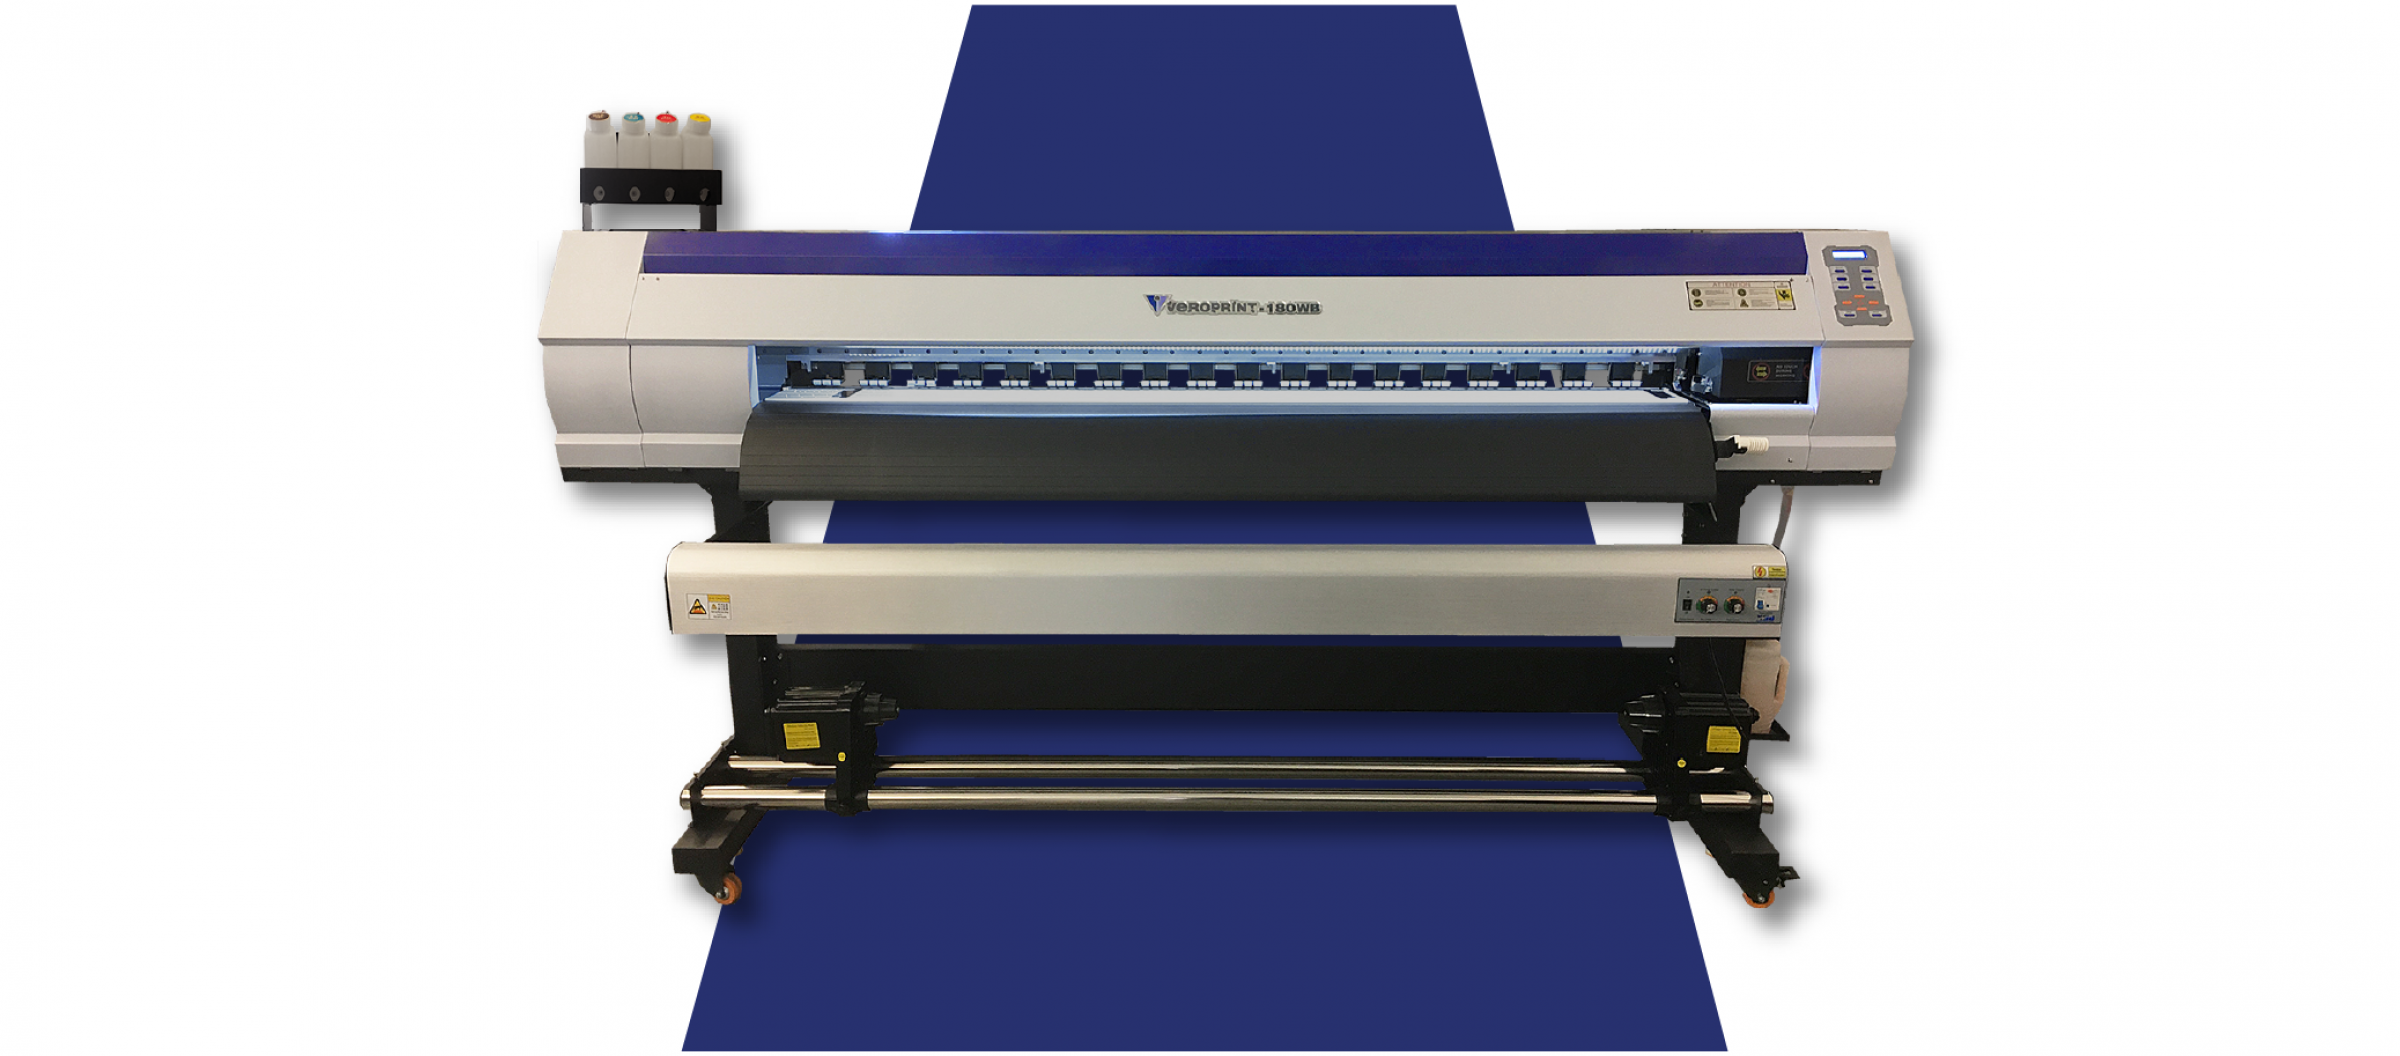 Plotter for digital printing